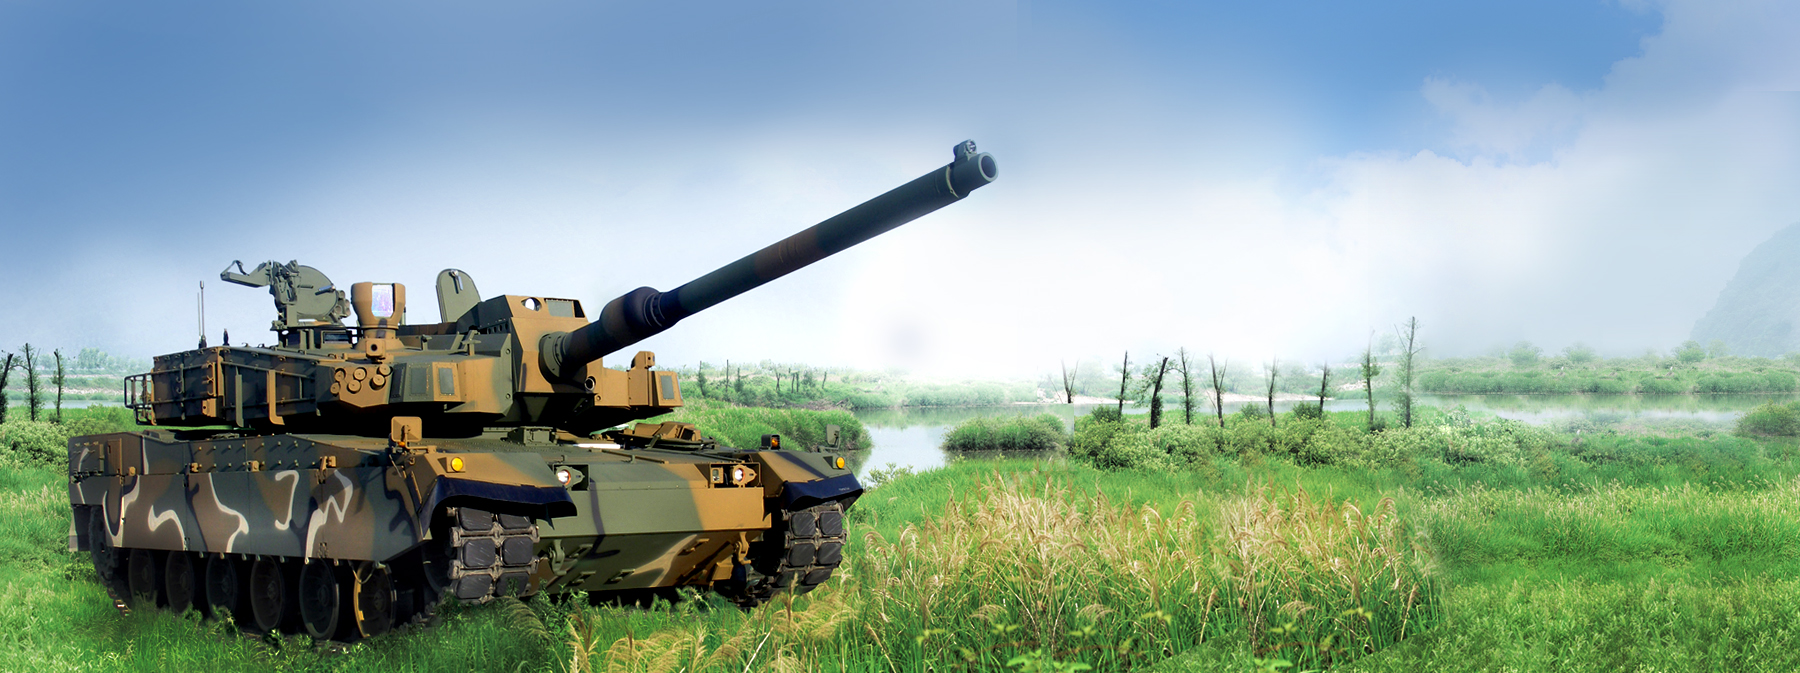 LS Mtron's special defense products are used in various combat vehicles